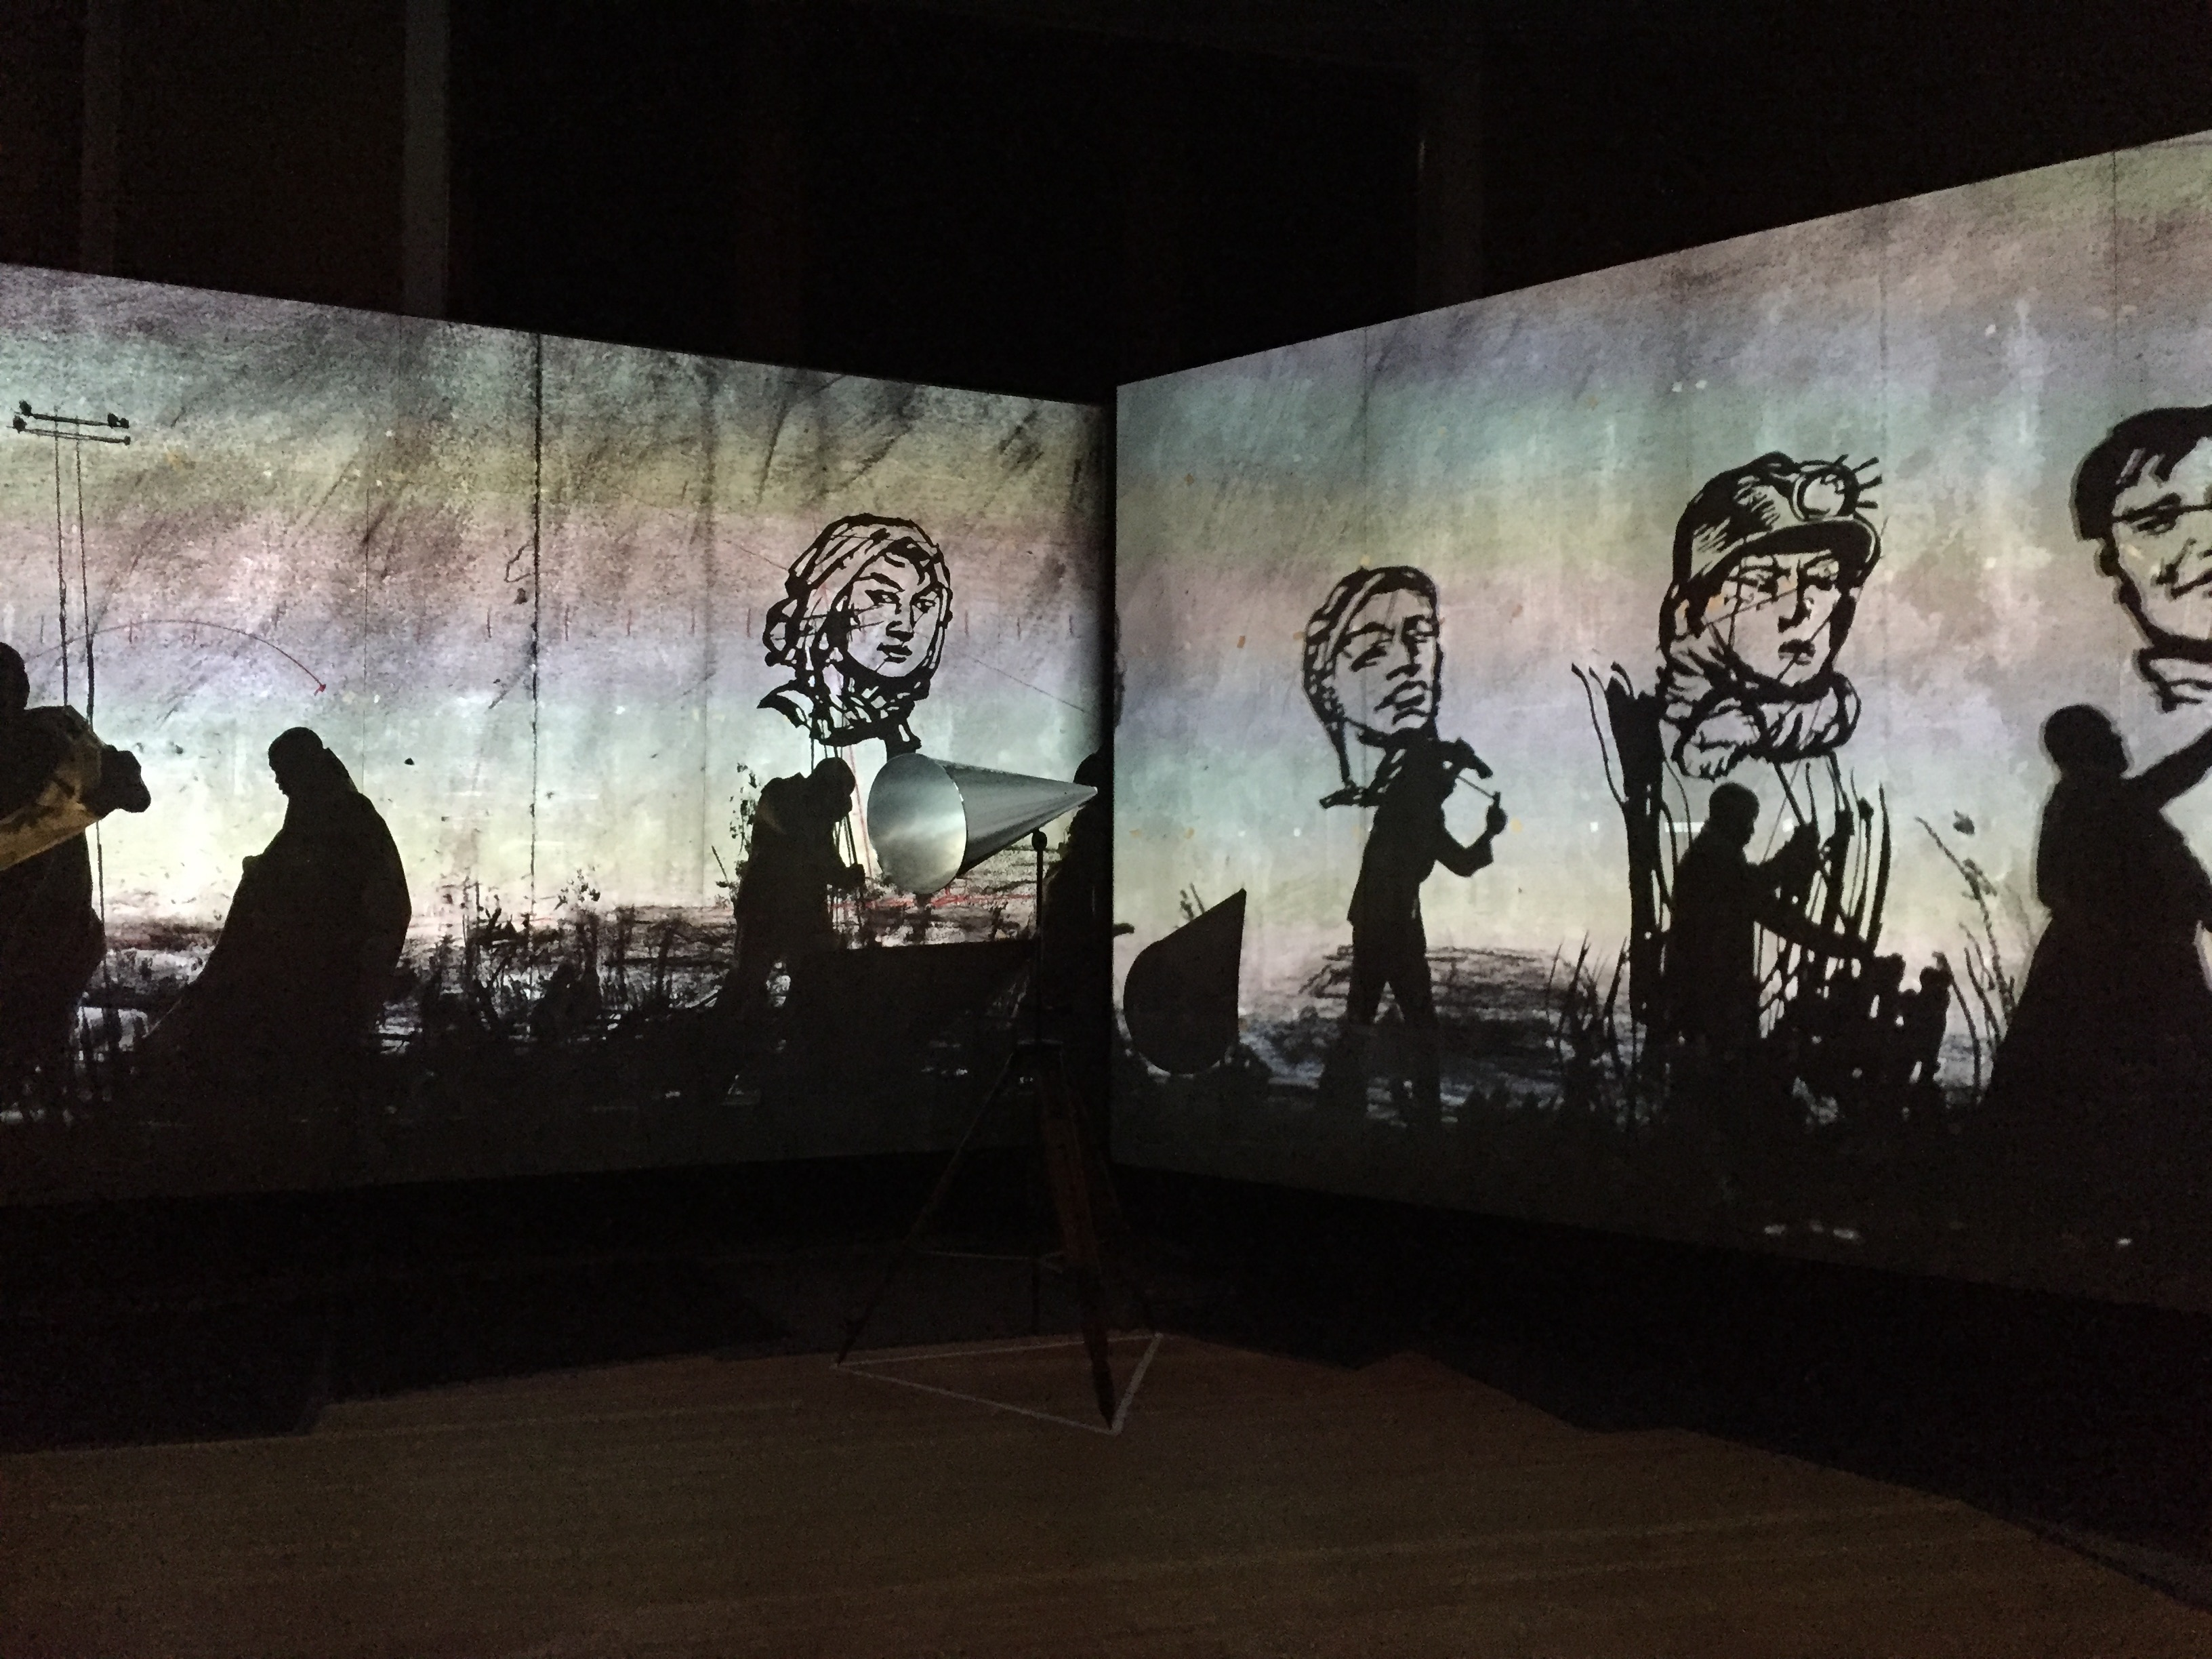 Exhibition view of William Kentridge's exhibition NO IT IS! at Martin-Gropius-Bau. Courtesy Diana d'Arenberg.